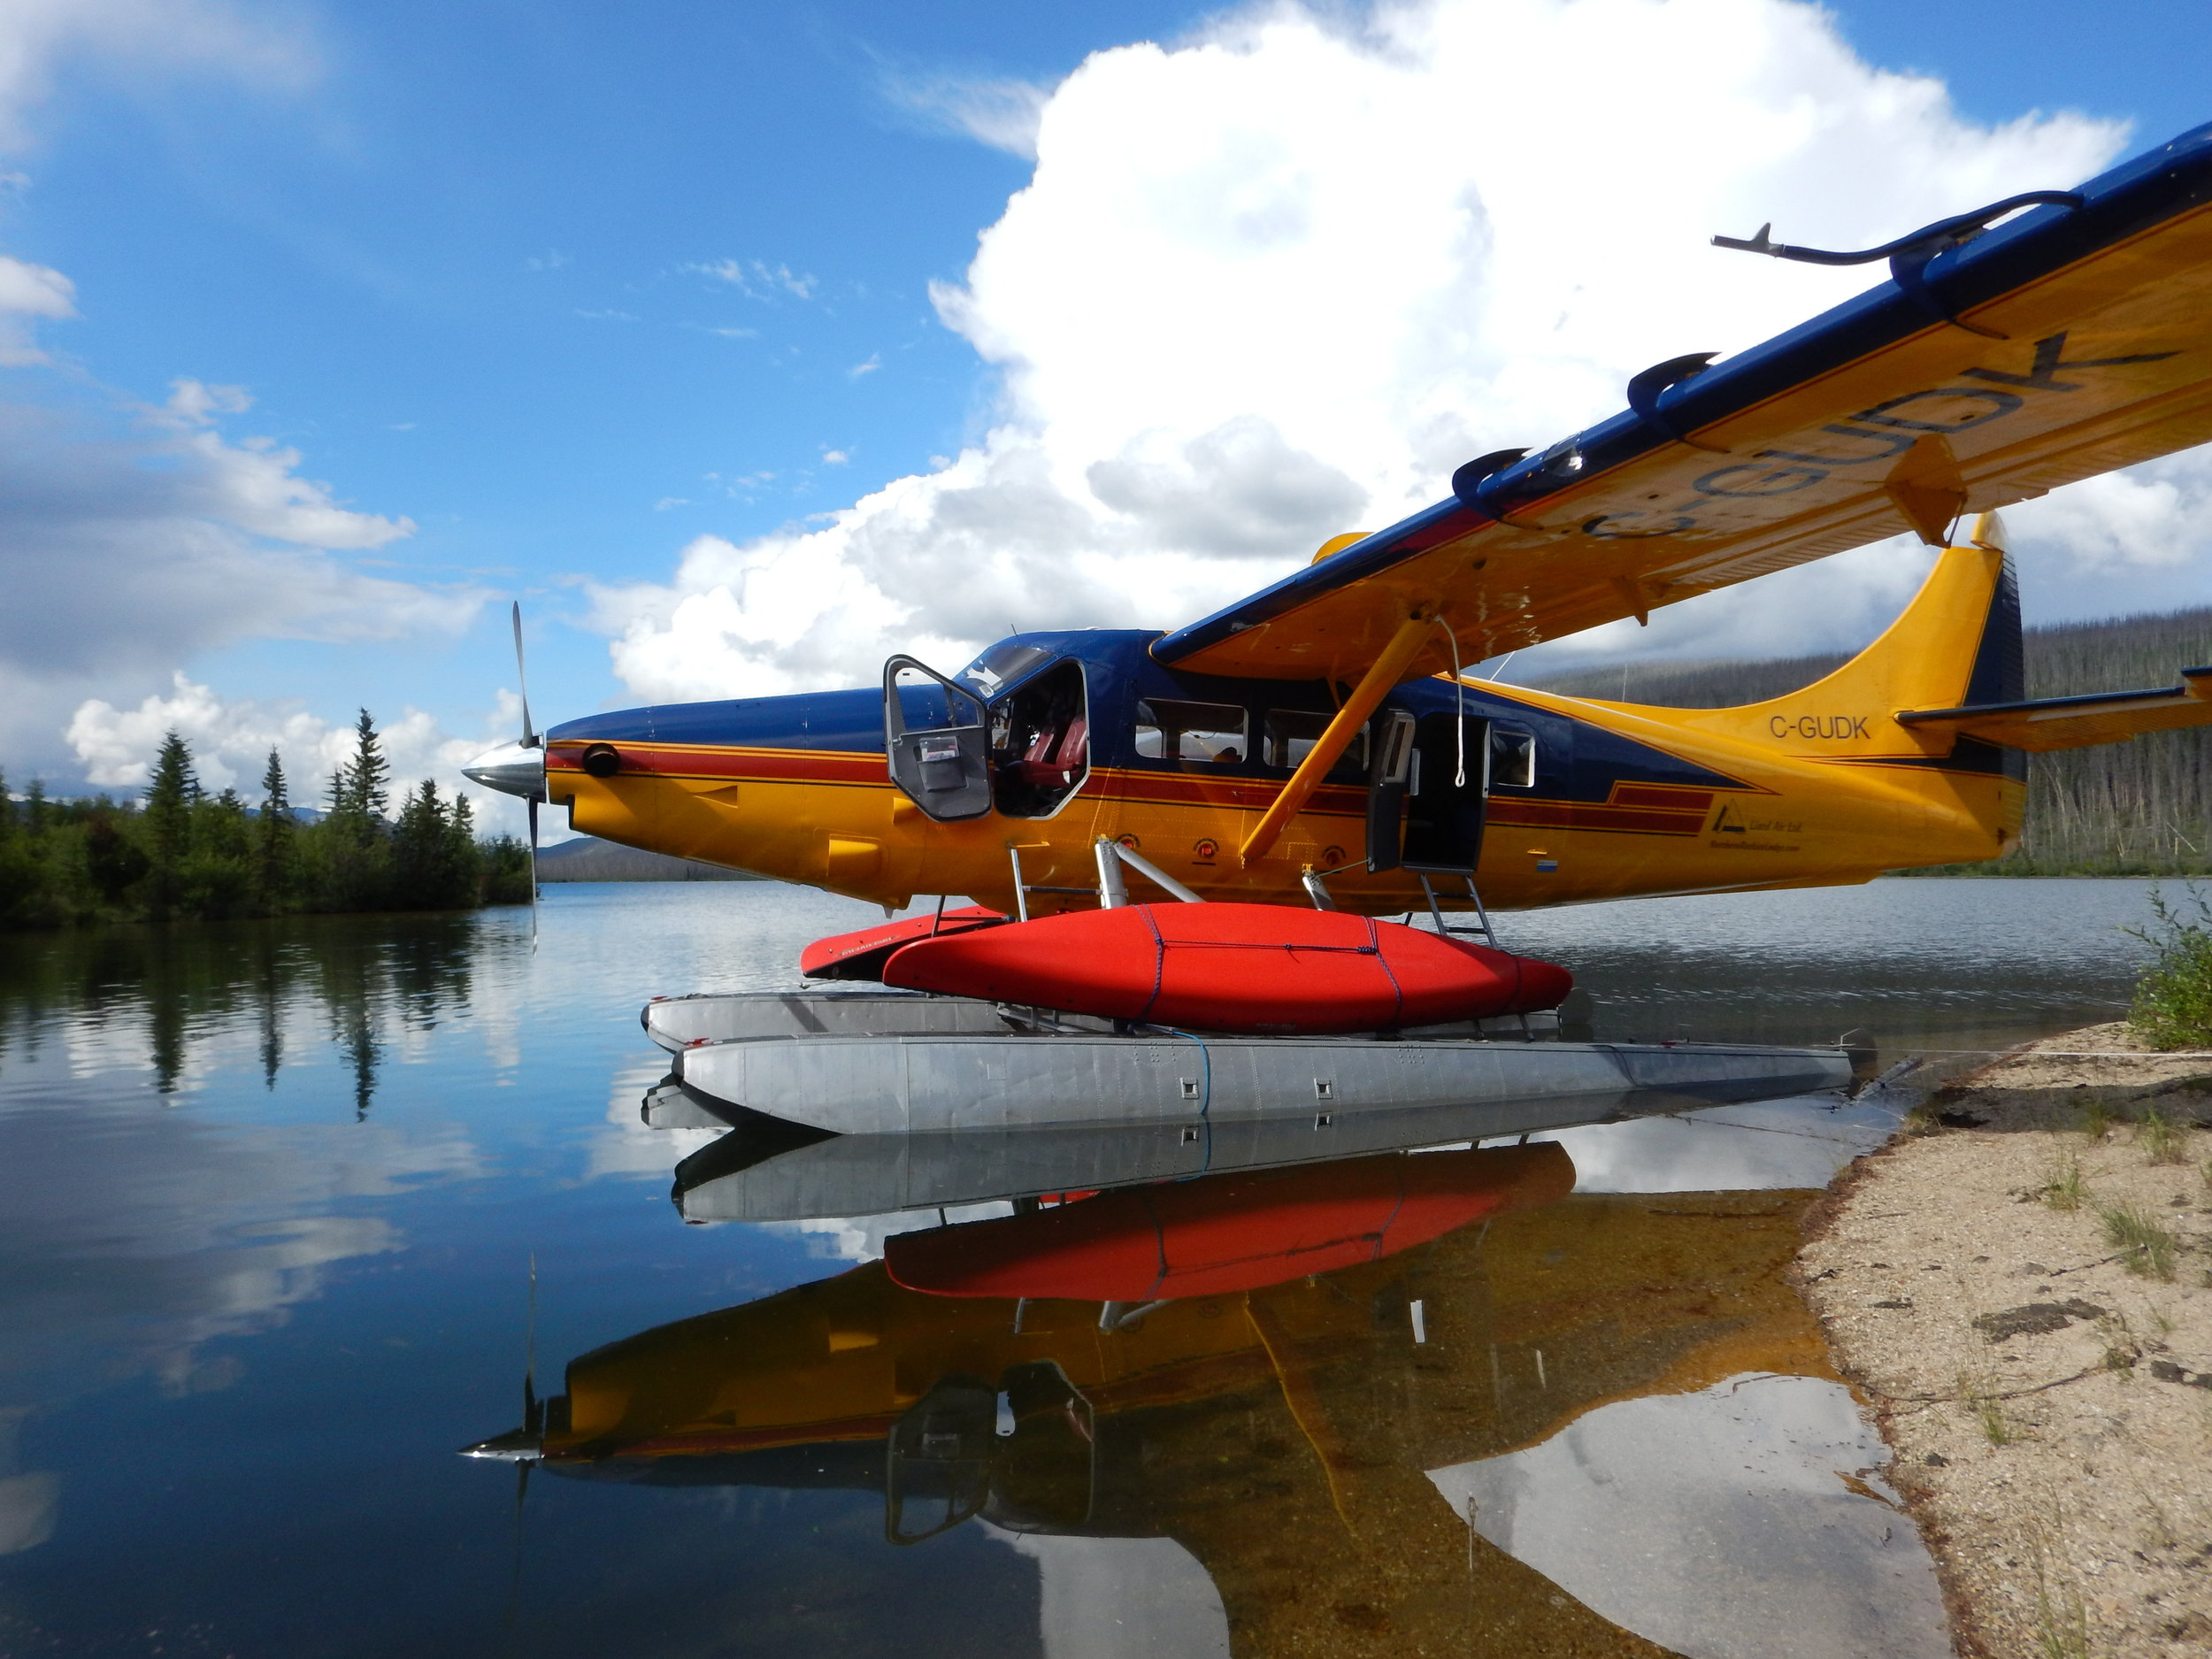 CANOEING AND WILDERNESS ADVENTURES: - Liard Tours provides air transportation for fly-in canoe and hiking trips. We also offer return shuttle van pickup from and to the Northern Rockies Lodge on the Alaska Highway.